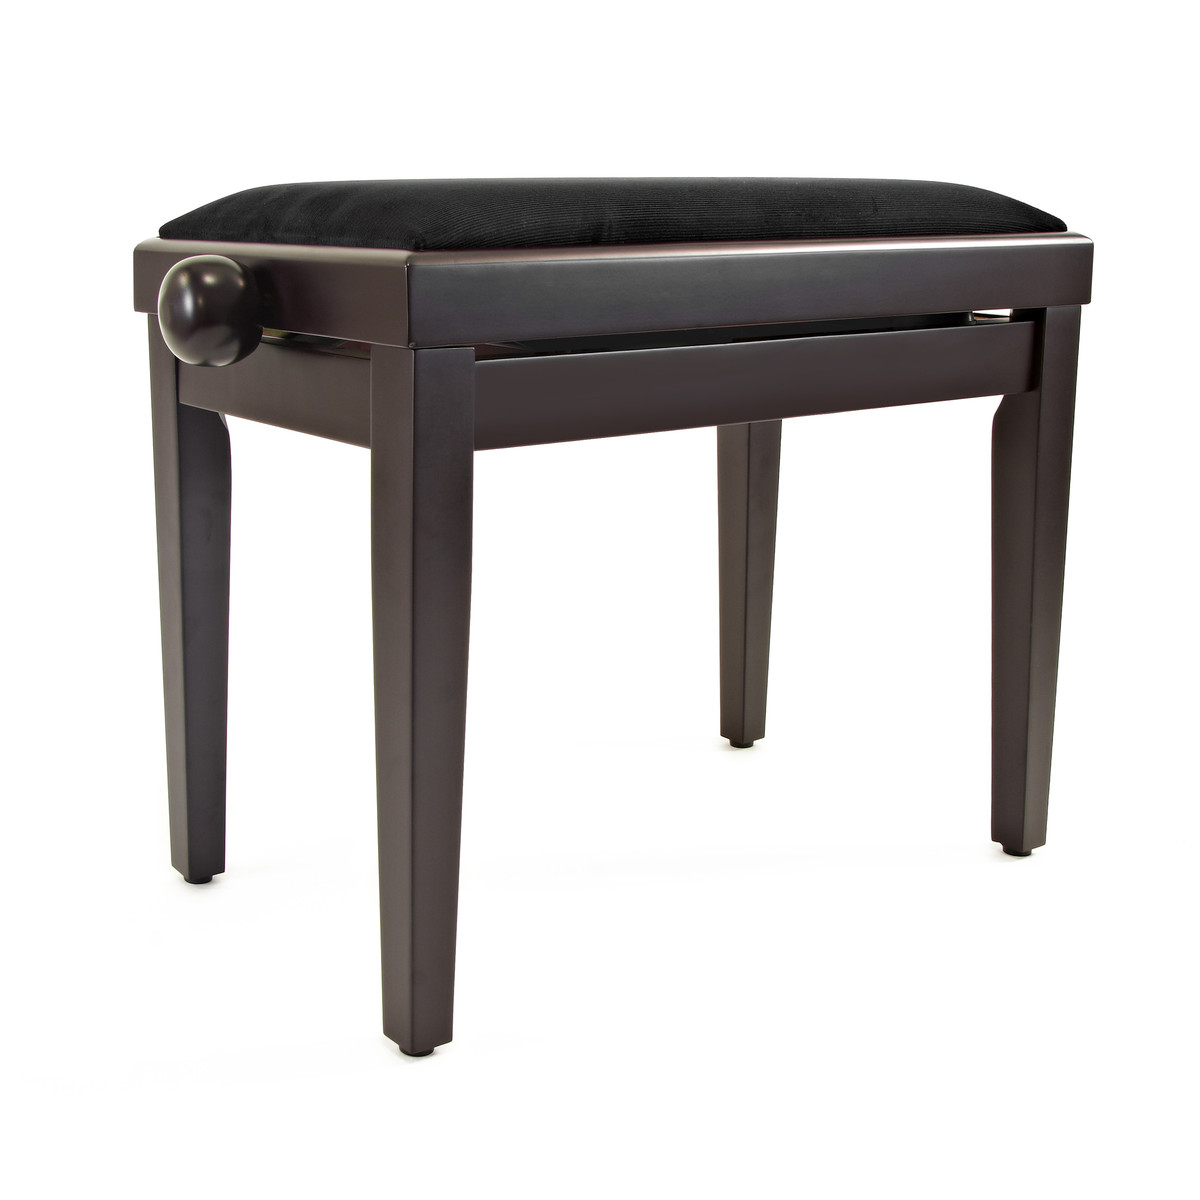 tabouret de piano r glable par gear4music palissandre ex d mo. Black Bedroom Furniture Sets. Home Design Ideas